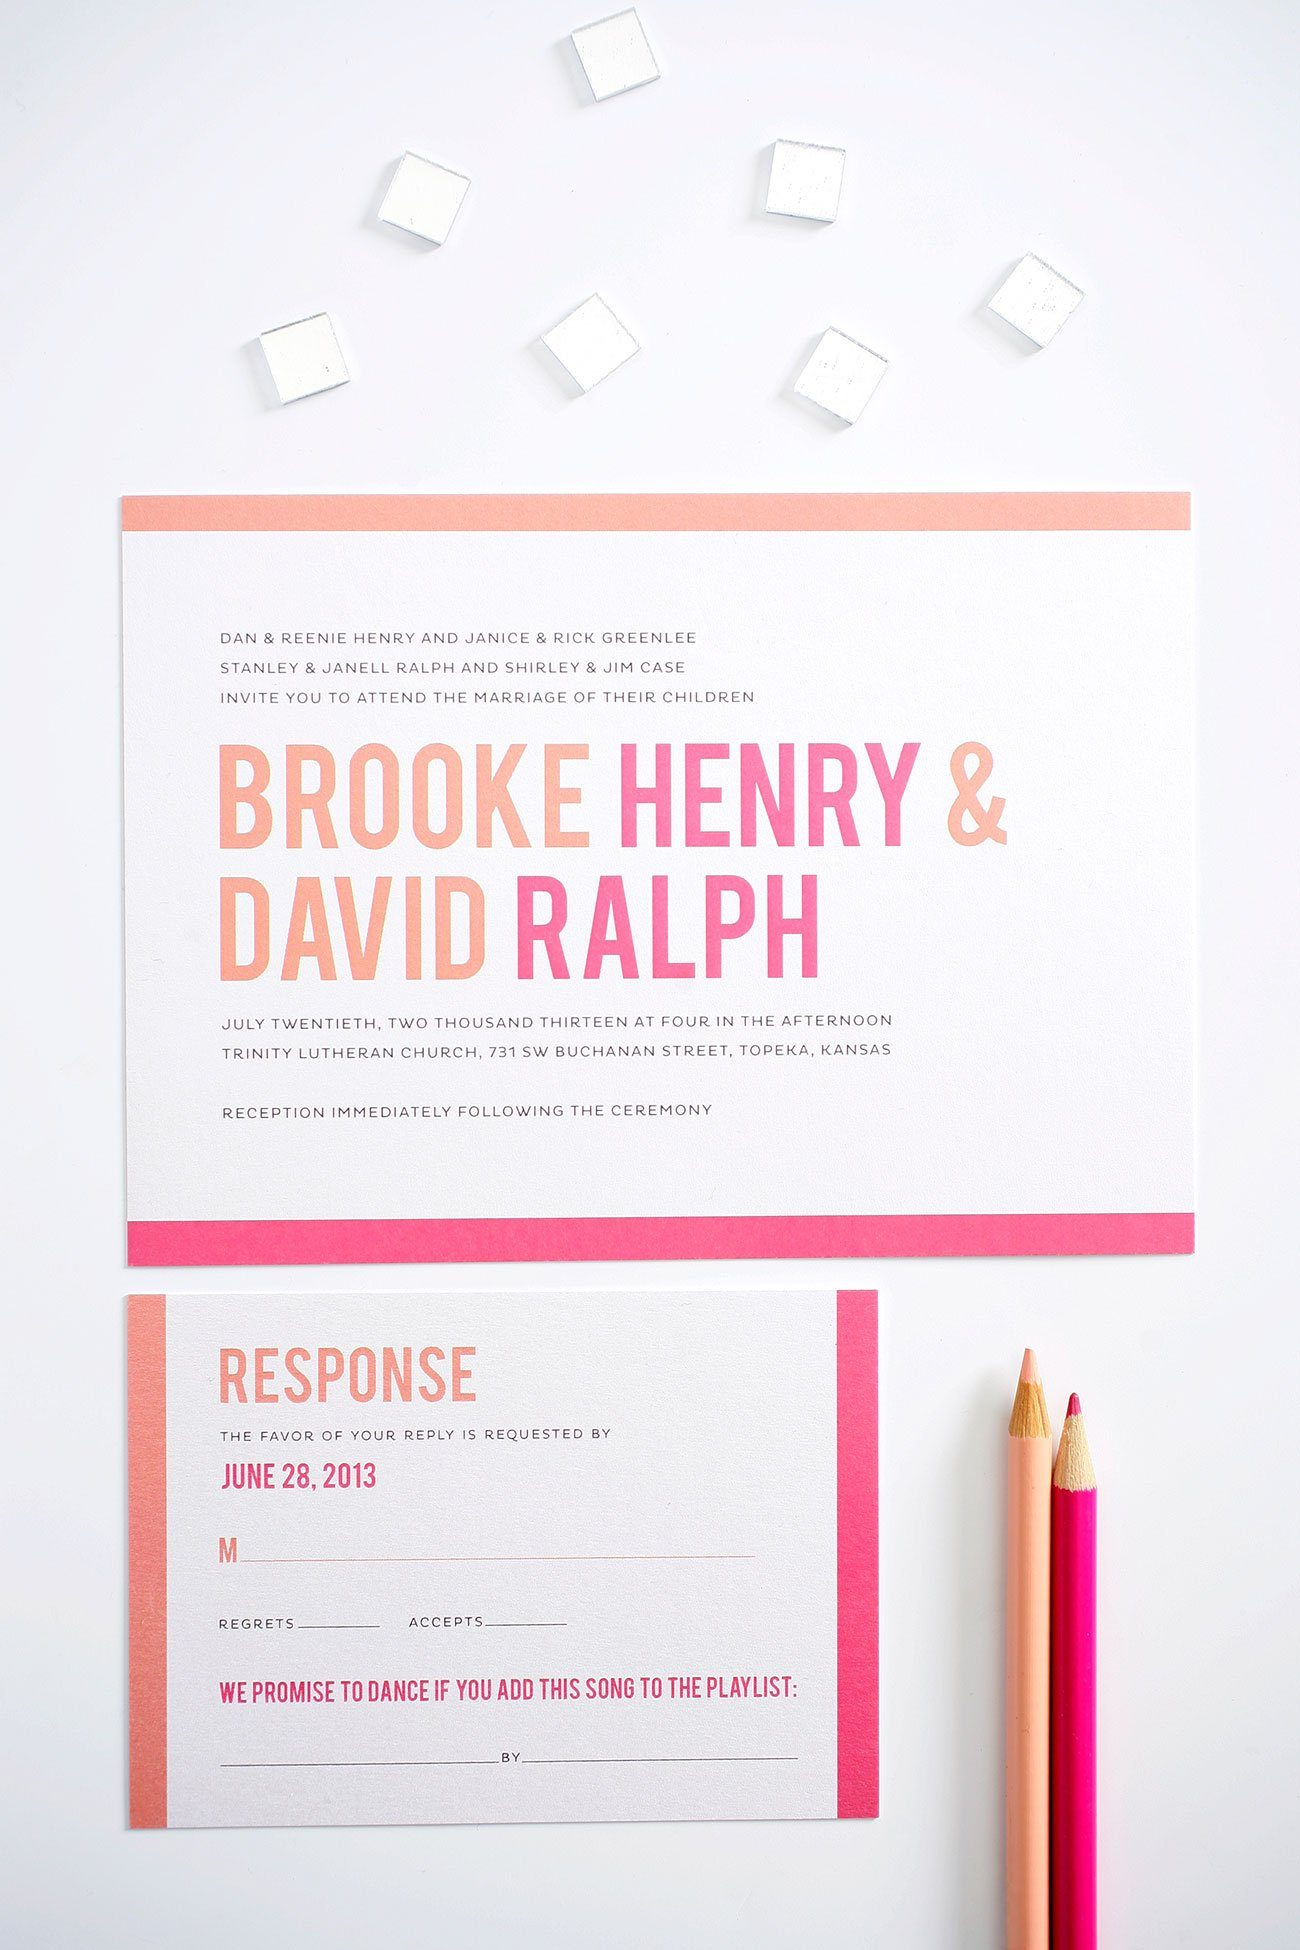 Modern wedding invitations in peach and pink